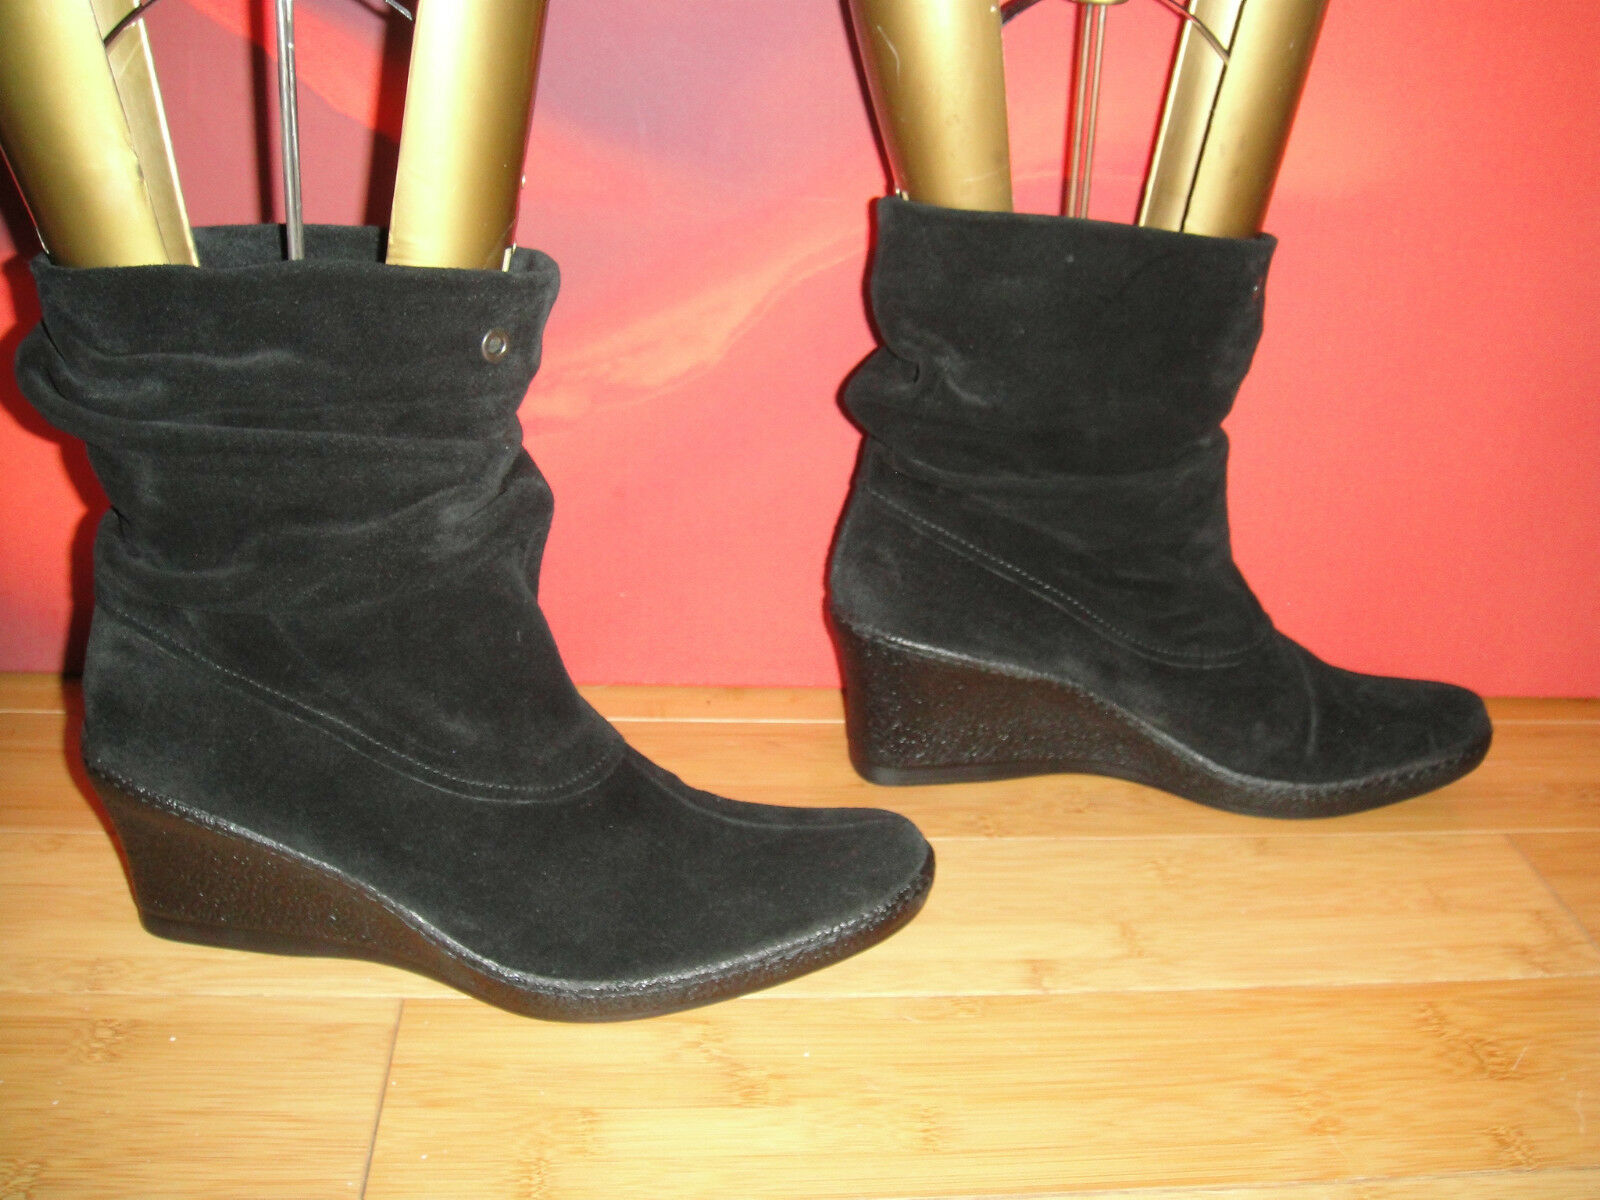 62 SUPERB  BLACK LEATHER SUEDE ANKLE WEDGE SLOUCH BOOTS EU 41